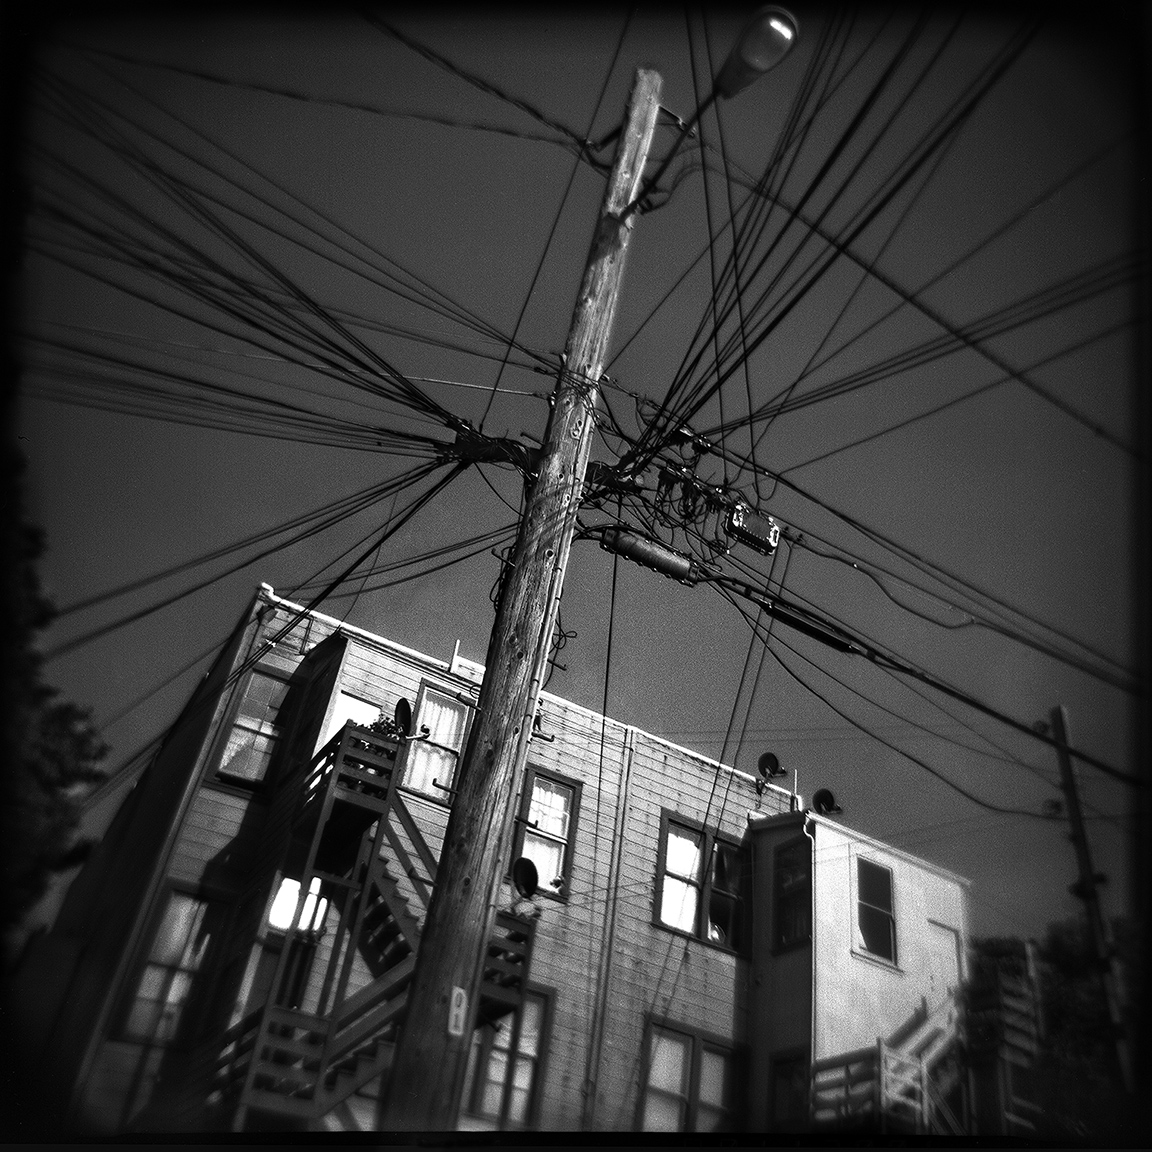 11-SF-HOLGA-WEBSITE-060314